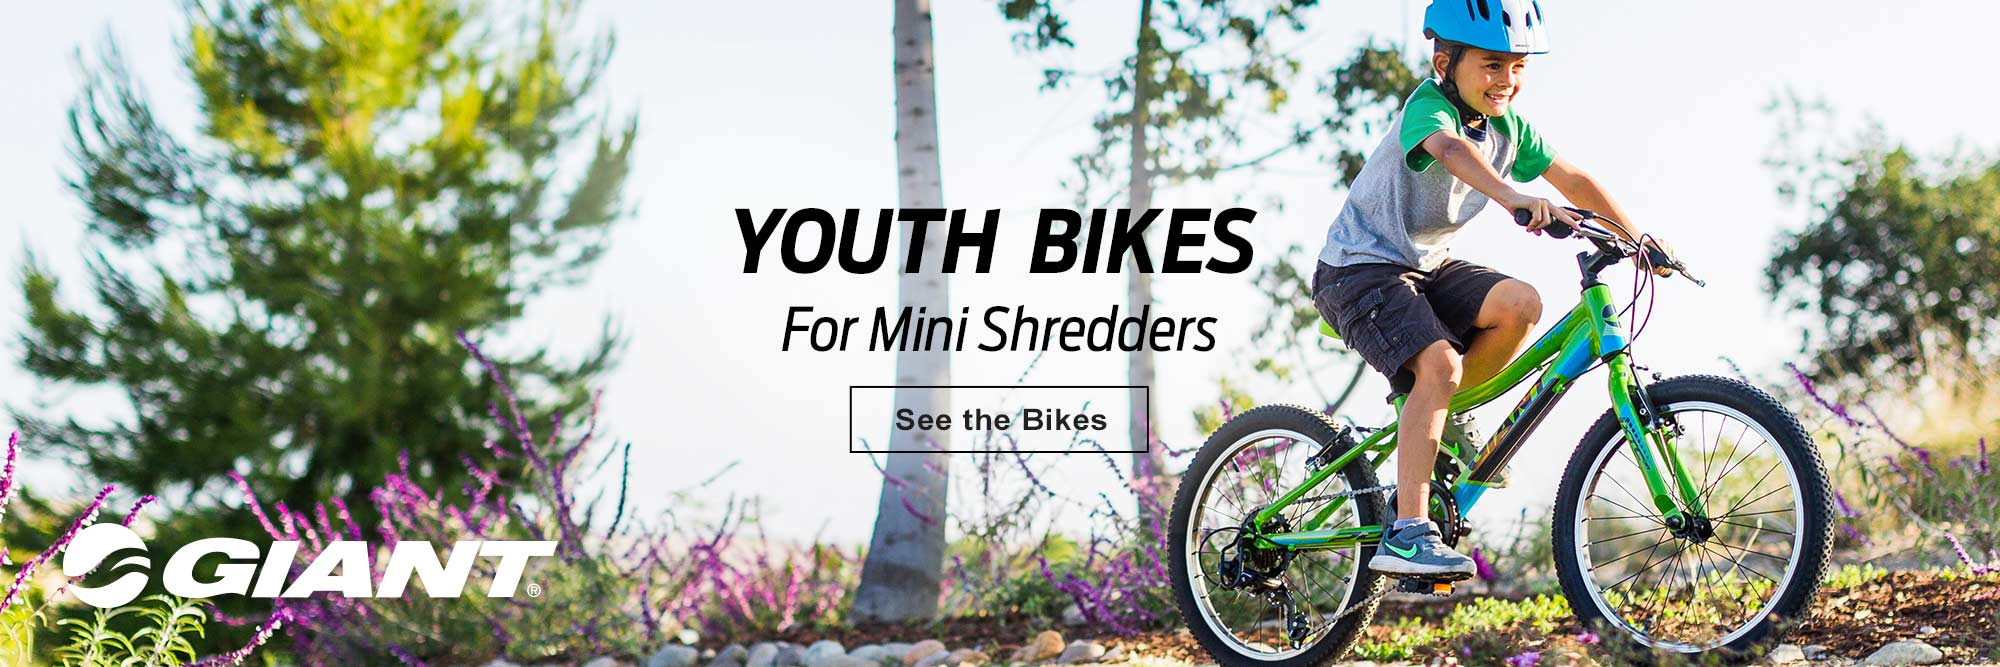 We sell Kid's Bikes!